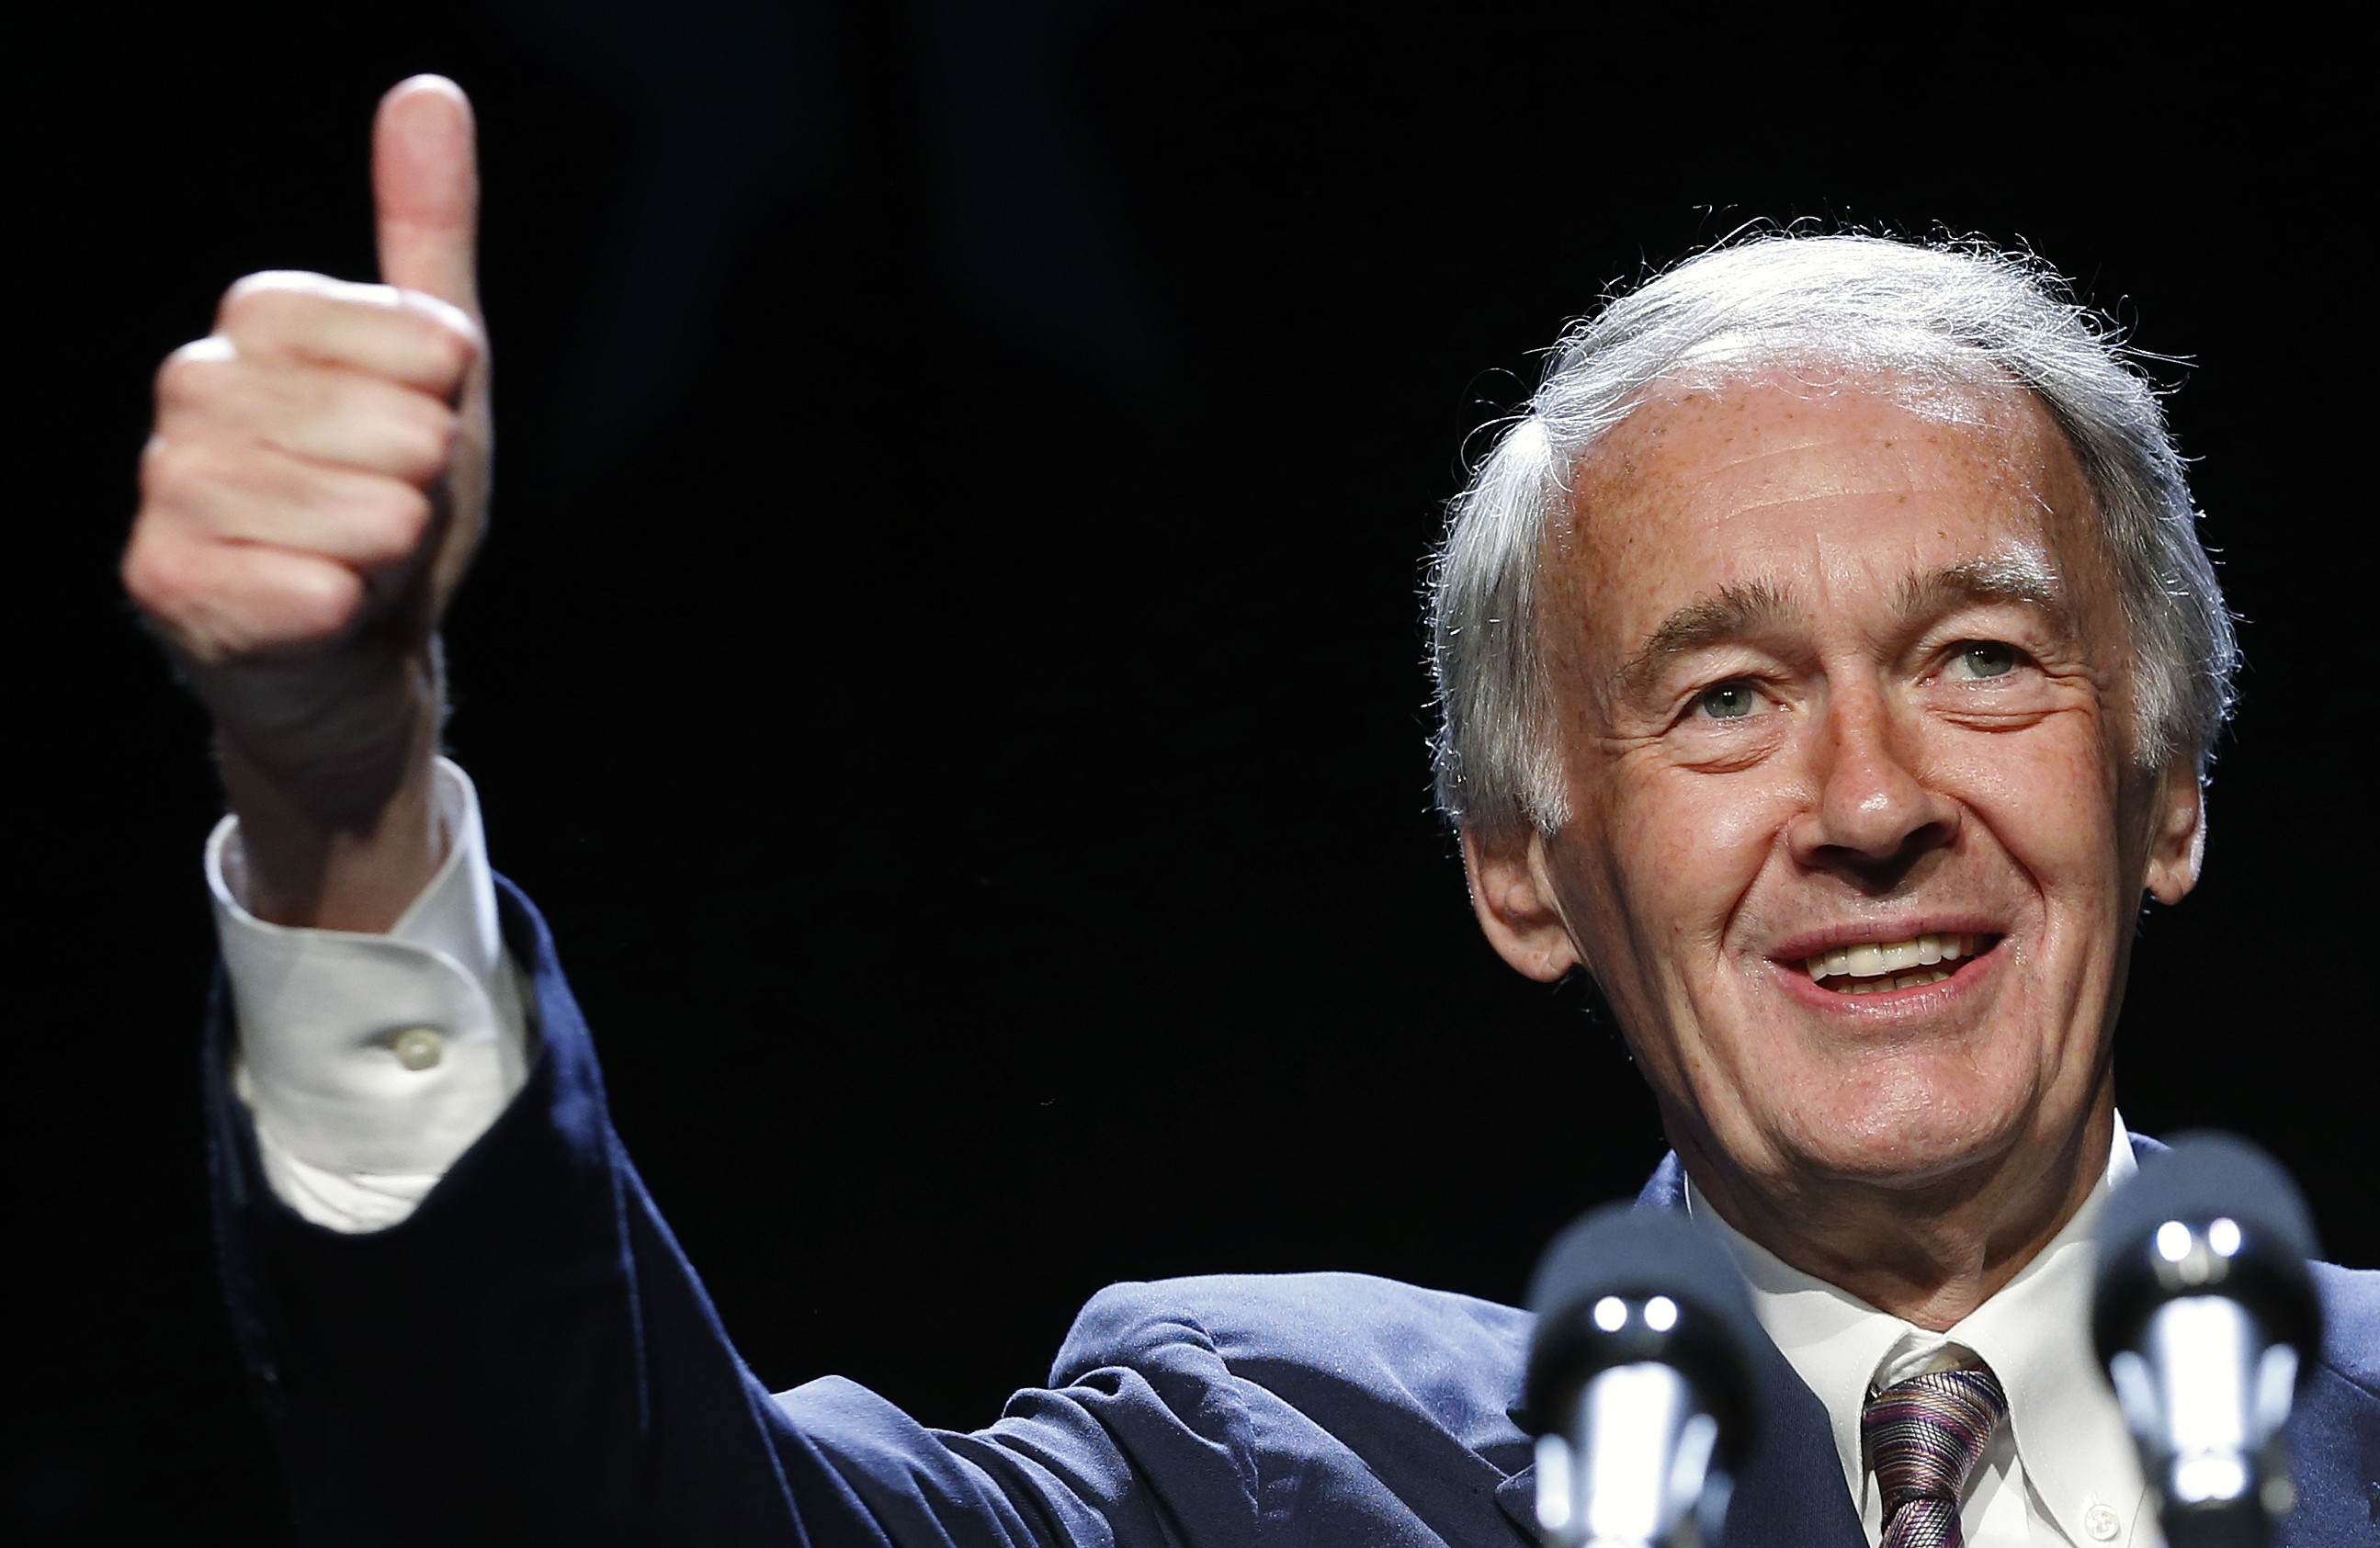 FILE - Senator-elect Ed Markey gives a thumbs-up while speaking at the Massachusetts state Democratic Convention in Lowell, Mass., in this July 13, 2013 file photo. Three weeks after winning Massachusetts' special U.S. Senate election, Edward Markey is set to take the oath of office Tuesday July 16, 2013. Vice President Joe Biden on Tuesday will swear in the longtime U.S. House member as Massachusetts' junior senator. (AP Photo/Michael Dwyer, File)